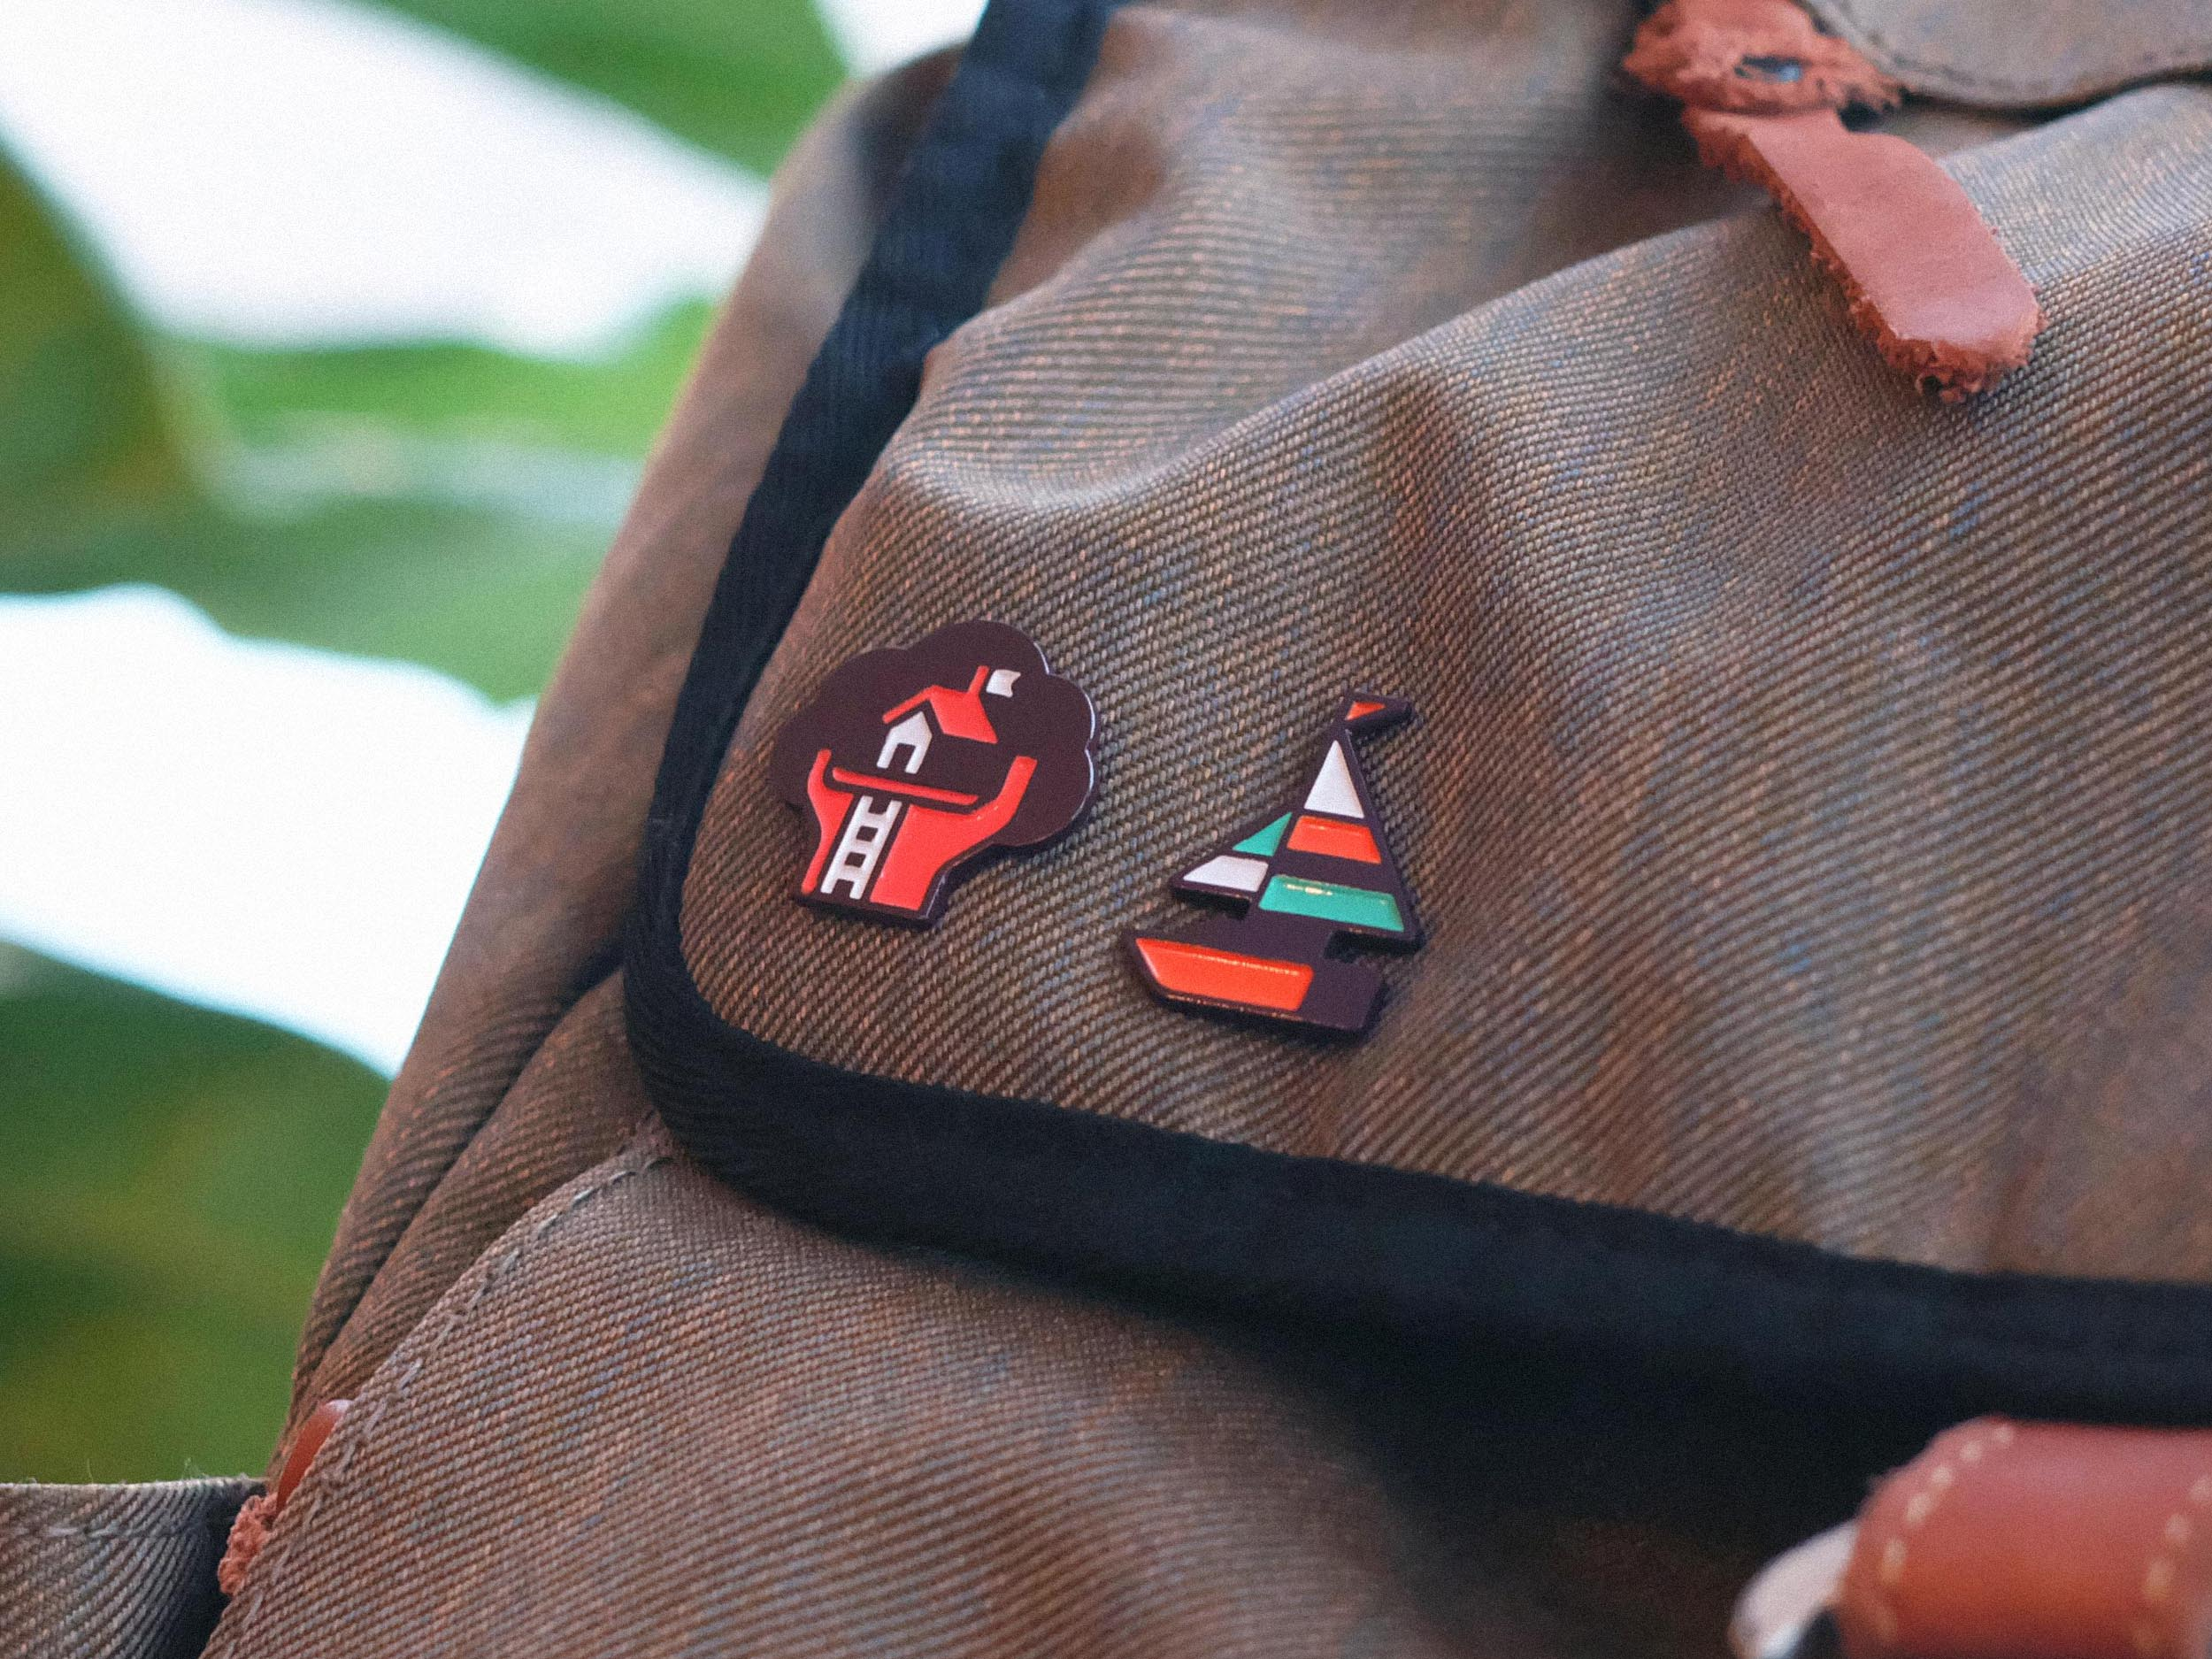 Enamel Pins - Our pins are made with die struck metal which is filled with a recessed enamel layer. This allows us to incorporate bright colors and bold designs into durable and portable works of art.